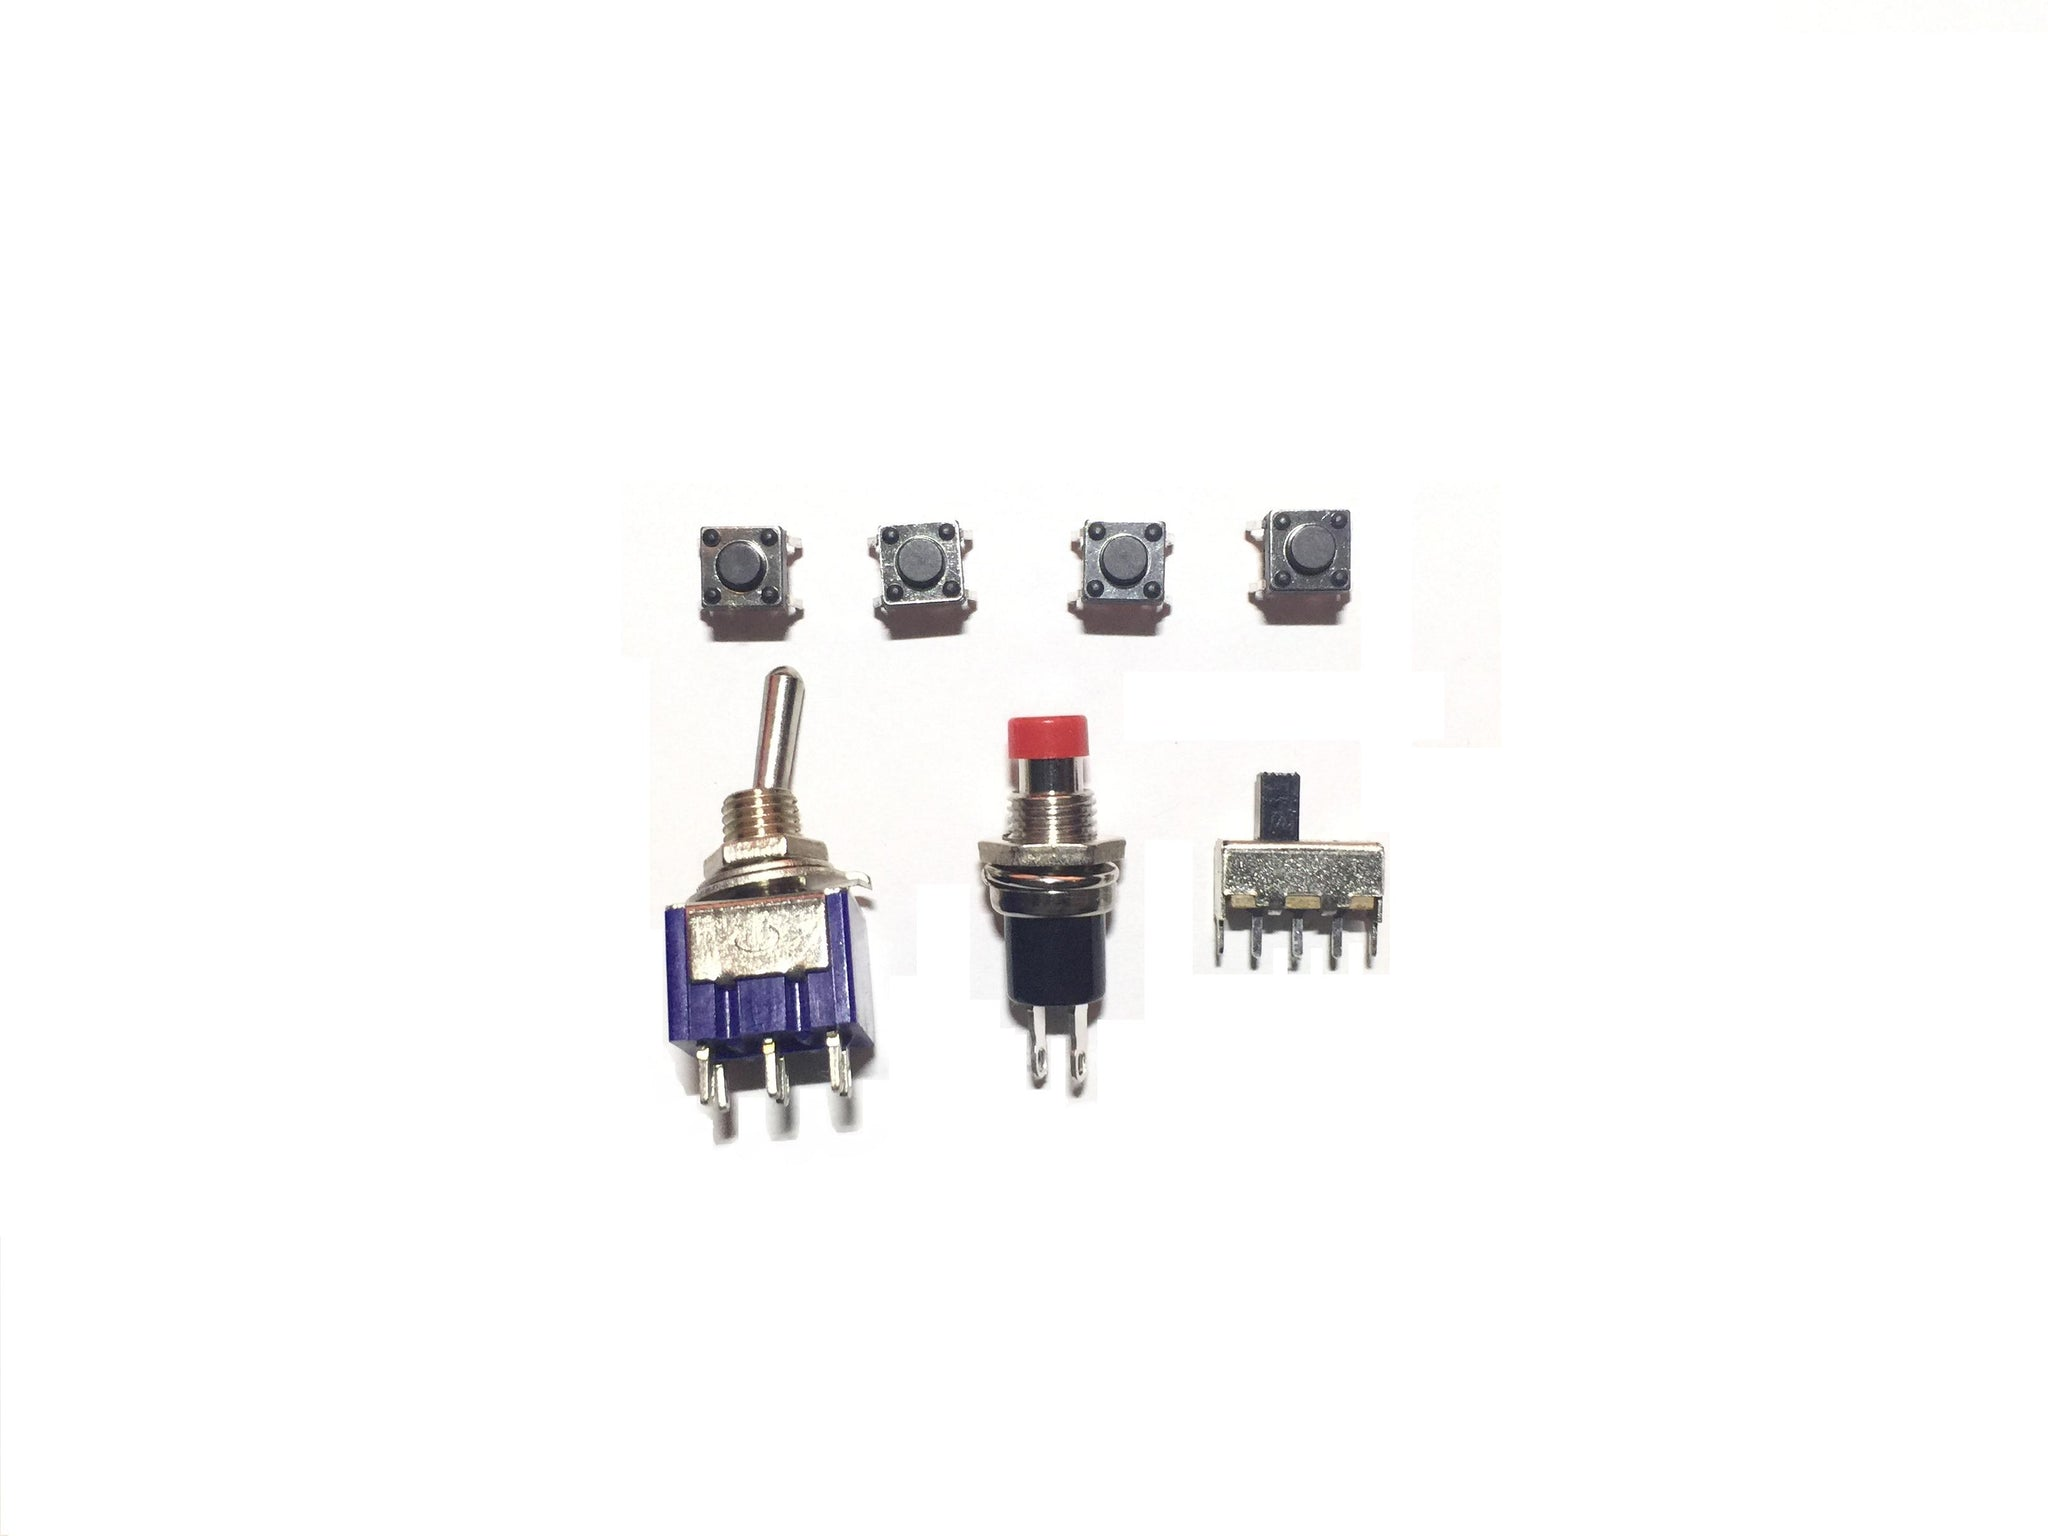 5 Piece Switch Pack